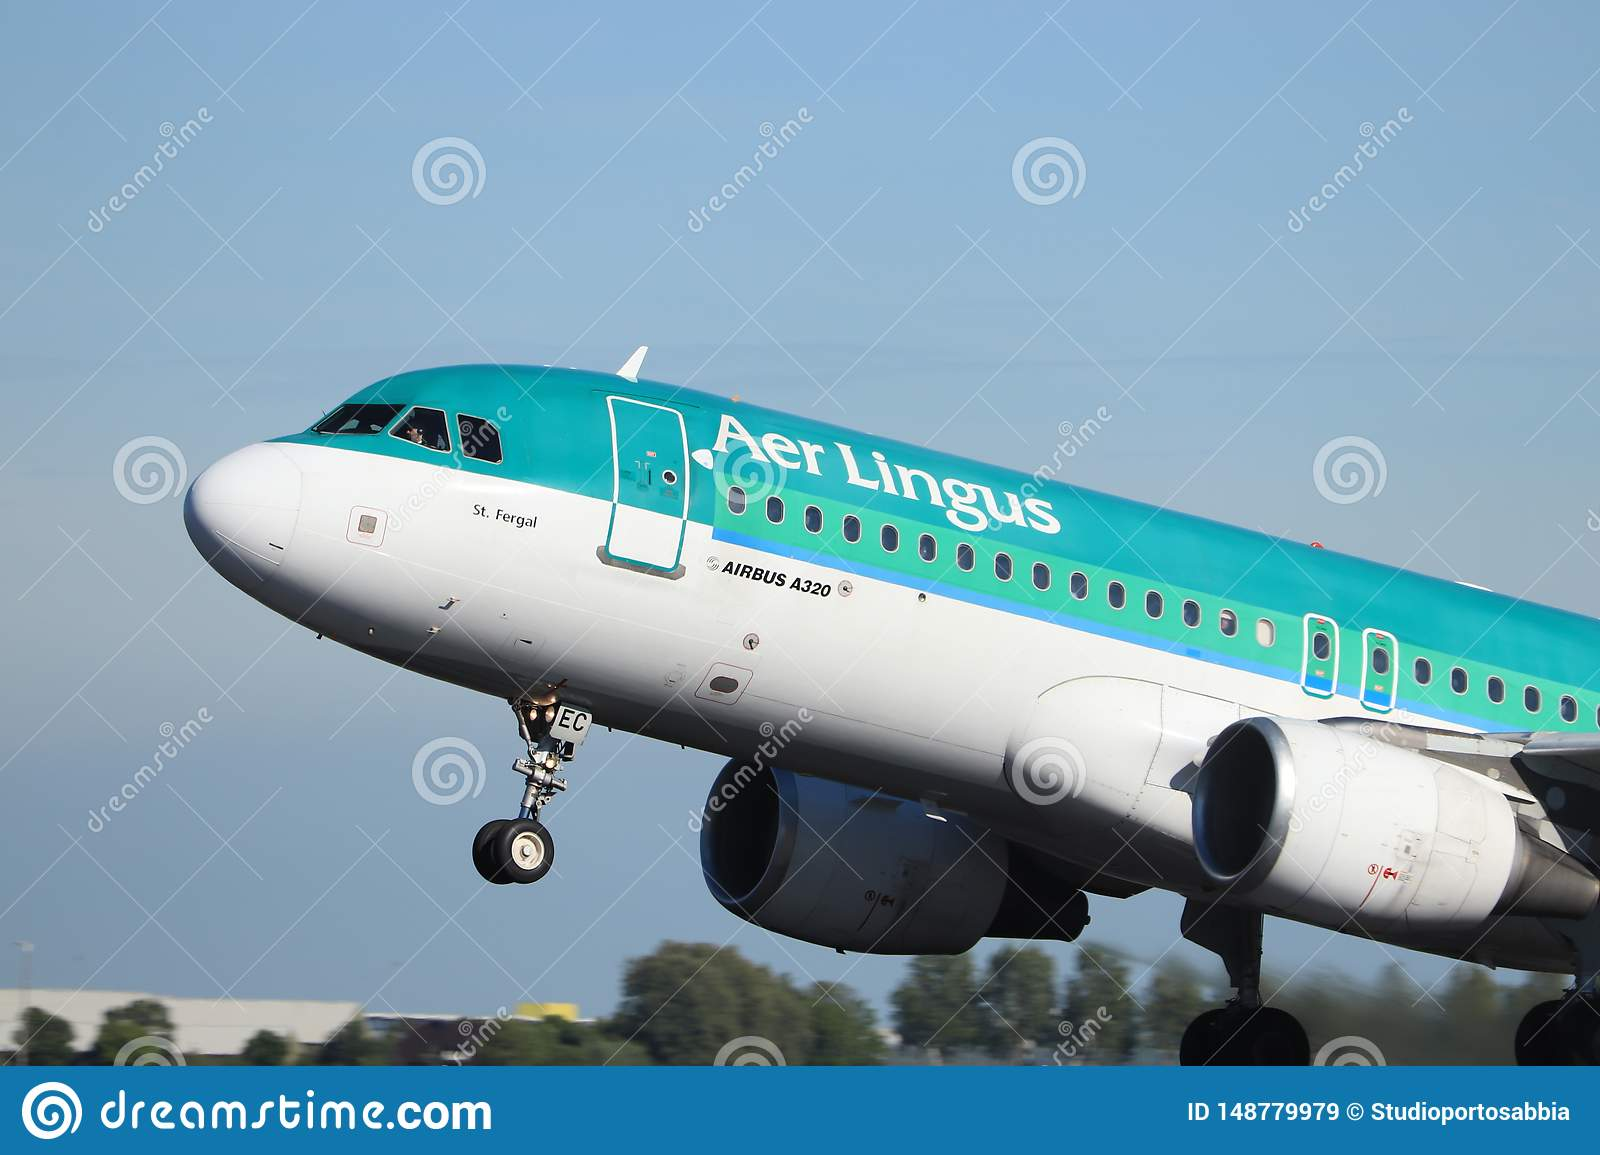 Amsterdam the Netherlands - May 24th, 2019: EI-DEC Aer Lingus Airbus A320-200